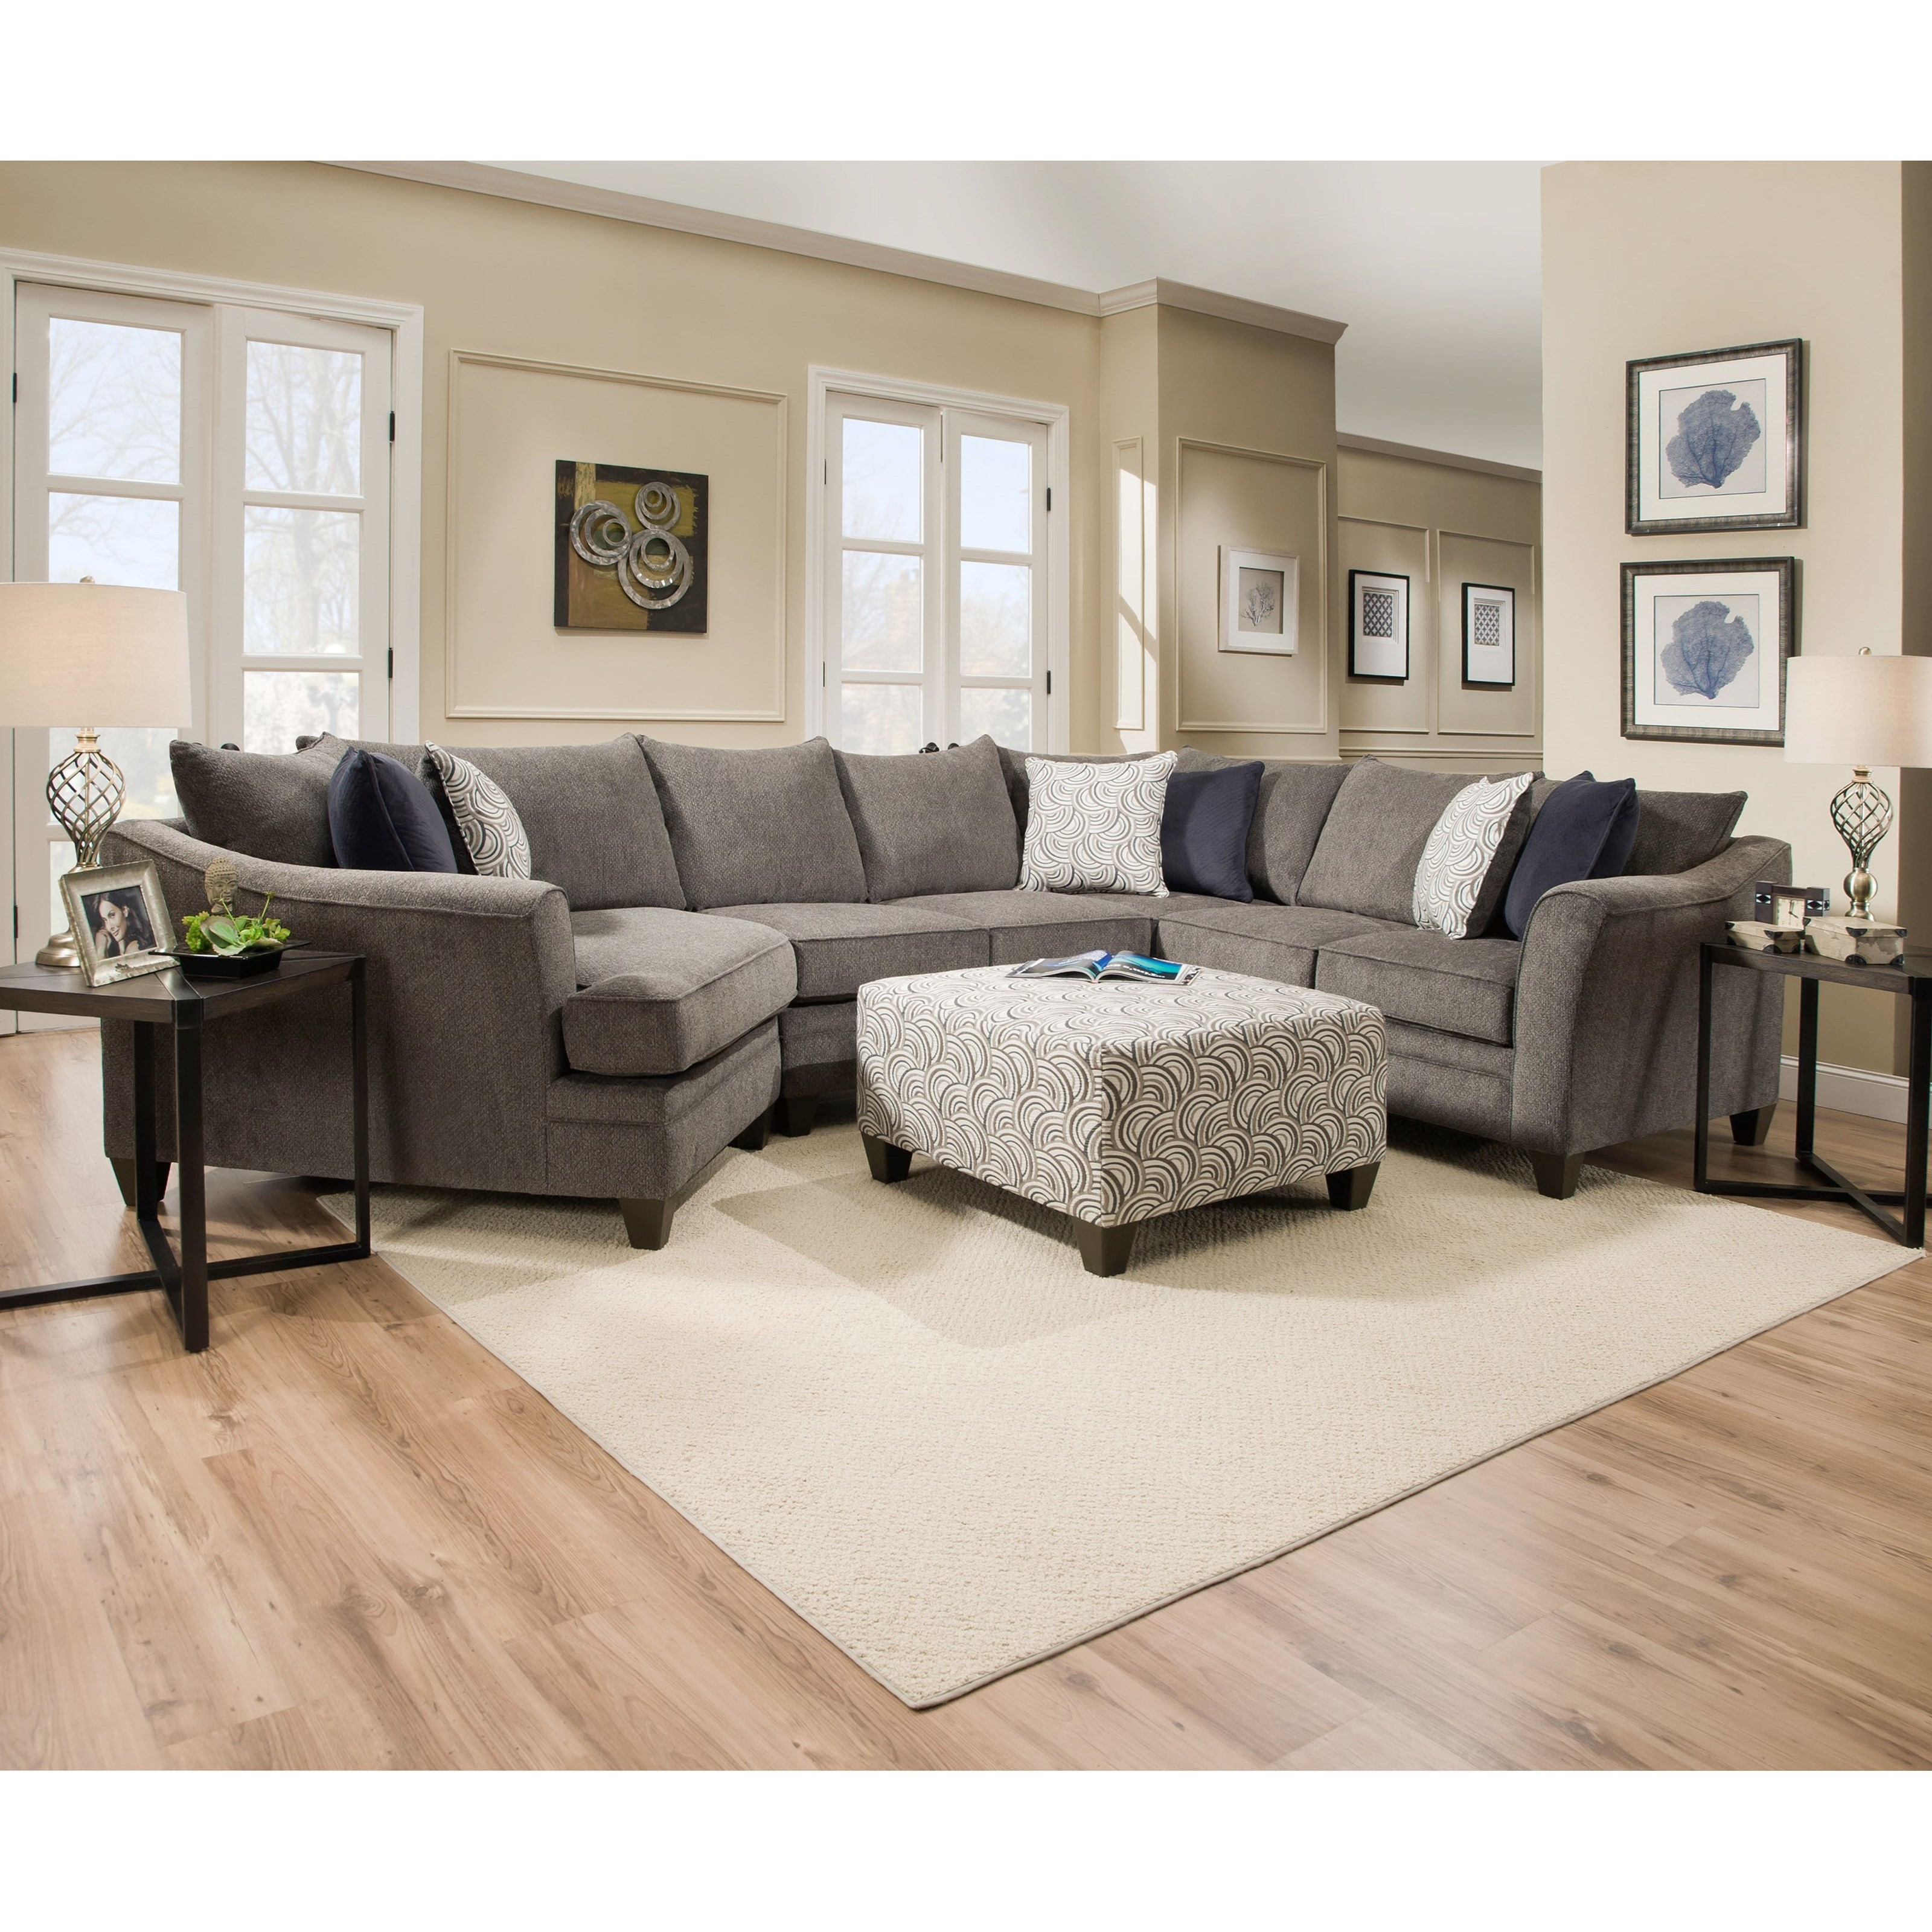 ... Transitional Sectional Sofa. Ottoman And Tables Not Included